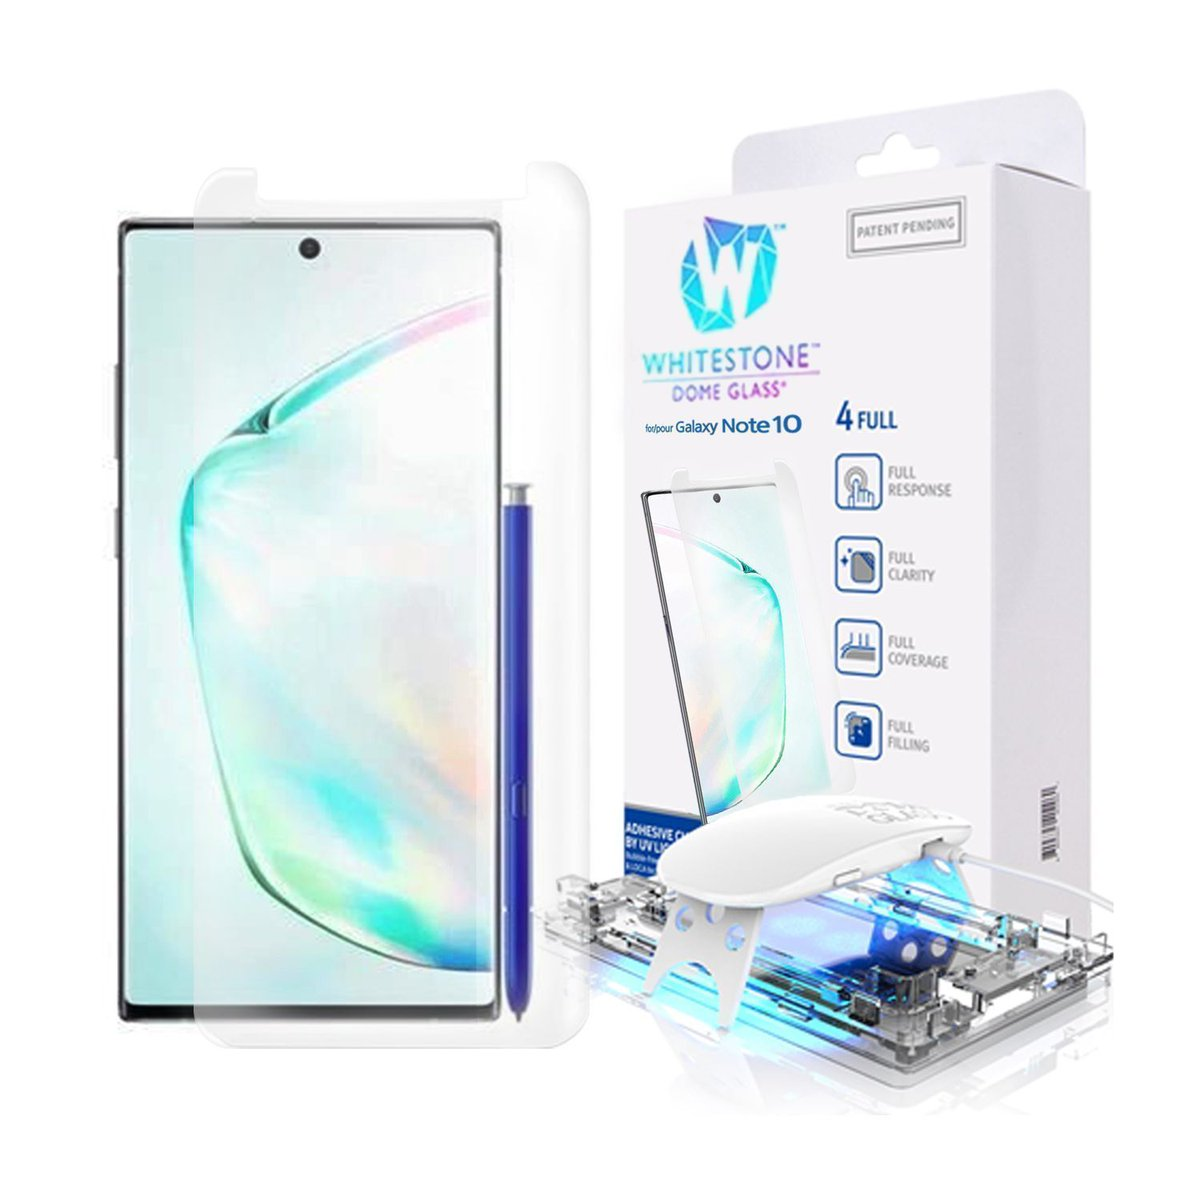 New glass screen protector for #GalaxyNote10Plus #GalaxyNote10 😍  🔥Shop Now>   #BTS #ARMY #JIN #JUNGKOOK #RM #V #JIMIN #JHOPE #SUGA #BEST #Screenprotector #Premium #Glass #Cracked #Screen #Purple #Ipurpleyou #Note10 #Note10Plus #iPhone11ProMax